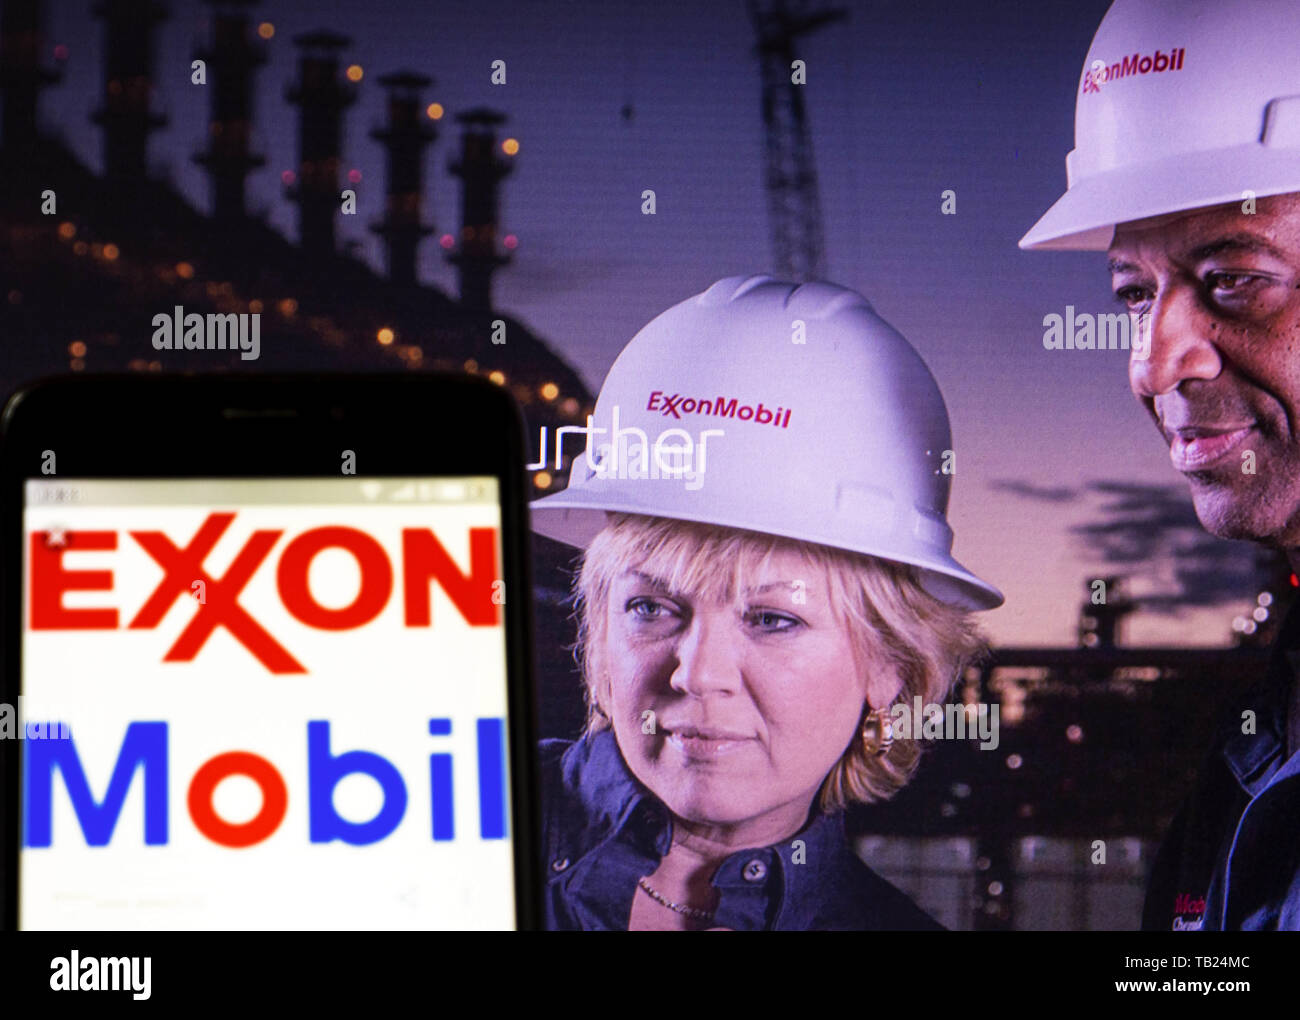 May 28, 2019 - Ukraine - In this photo illustration the Exxon Mobil Corporation logo is seen displayed on a smartphone with a company's official website on the background. (Credit Image: © Igor Golovniov/SOPA Images via ZUMA Wire) - Stock Image